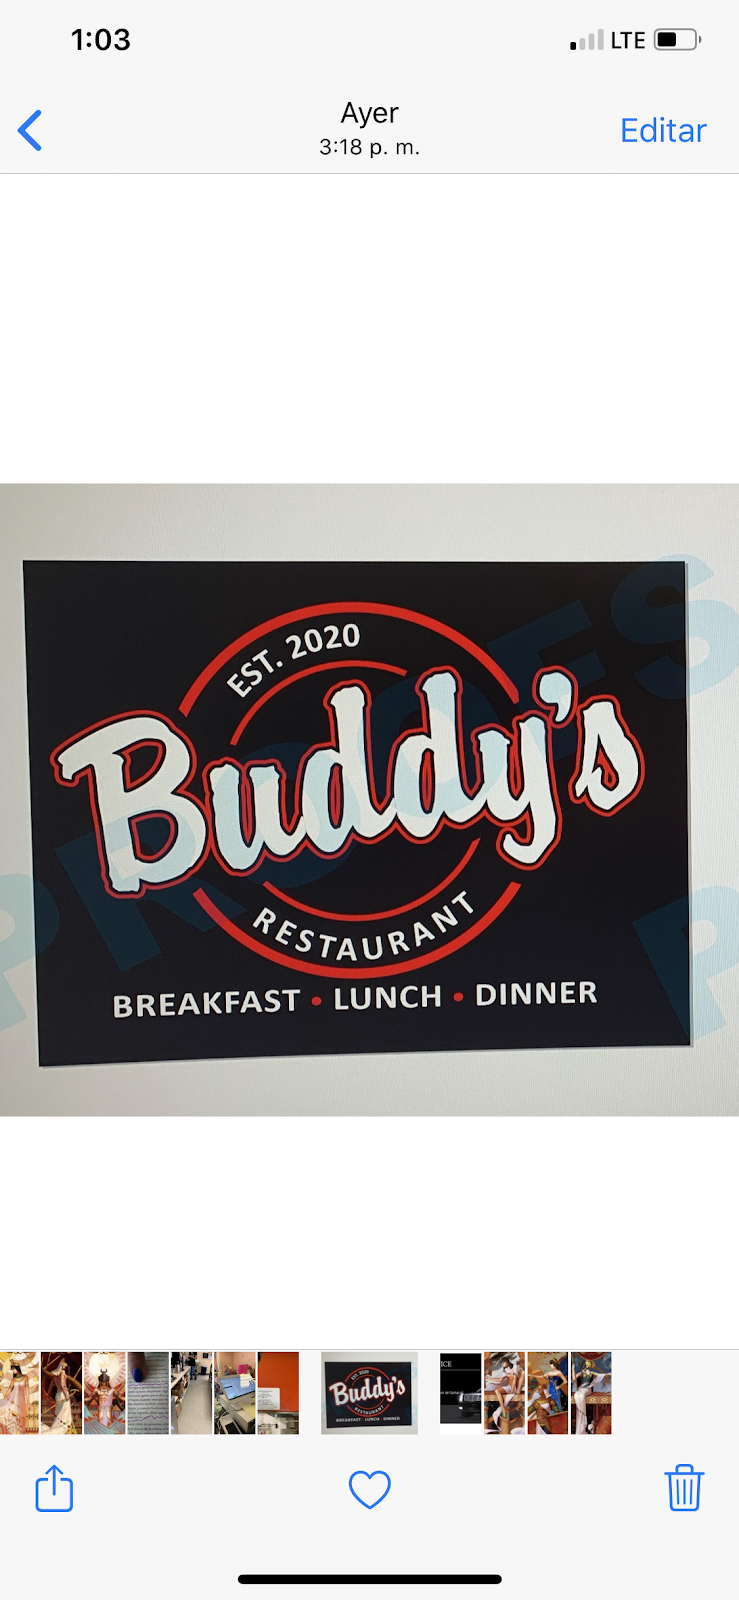 BUDDYS RESTAURANT | restaurant | 4 ST RD 28 W SUITE 110, Romney, IN 47981, USA | 7656379211 OR +1 765-637-9211